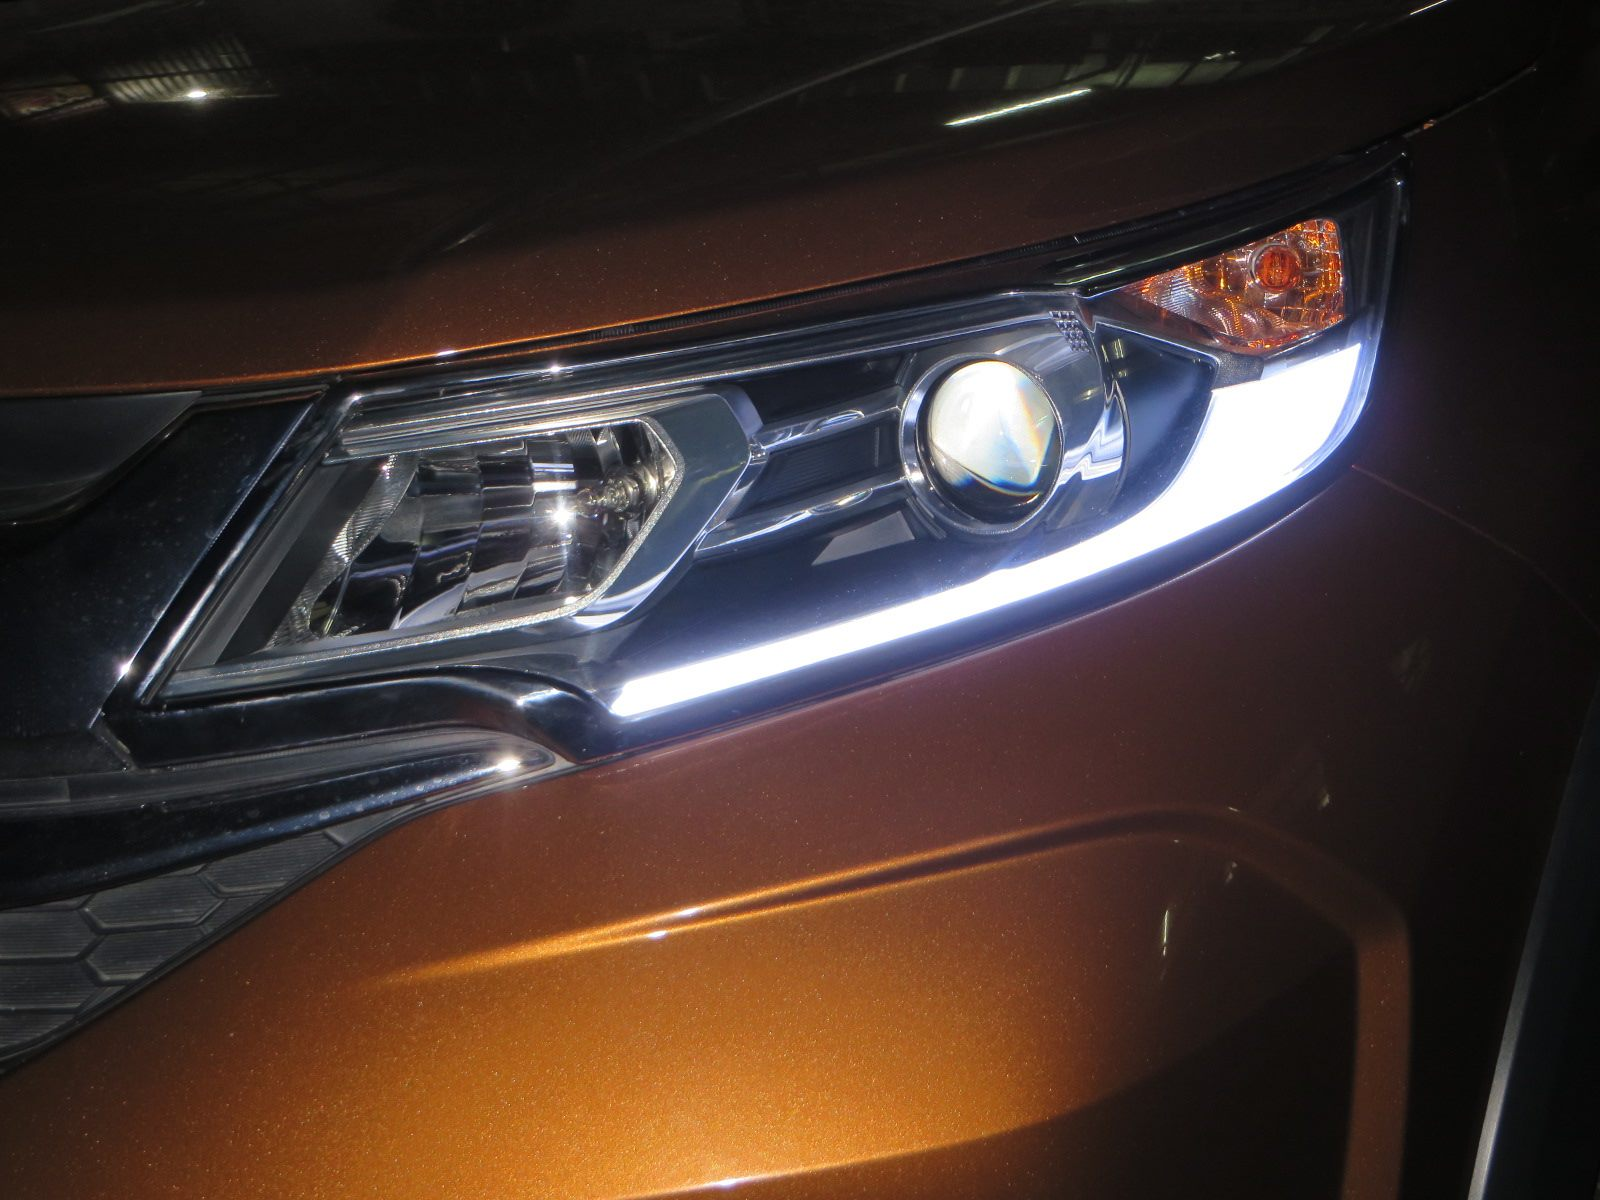 Hid Retrofit 2018 Honda Brv Headlamp Wire Harness With 3x More Light Output Vs The Stock Halogen Bulbs Without Glaring Other Motorists We Have Been Doing Hondas Since 2008 Theretrofitshopcom